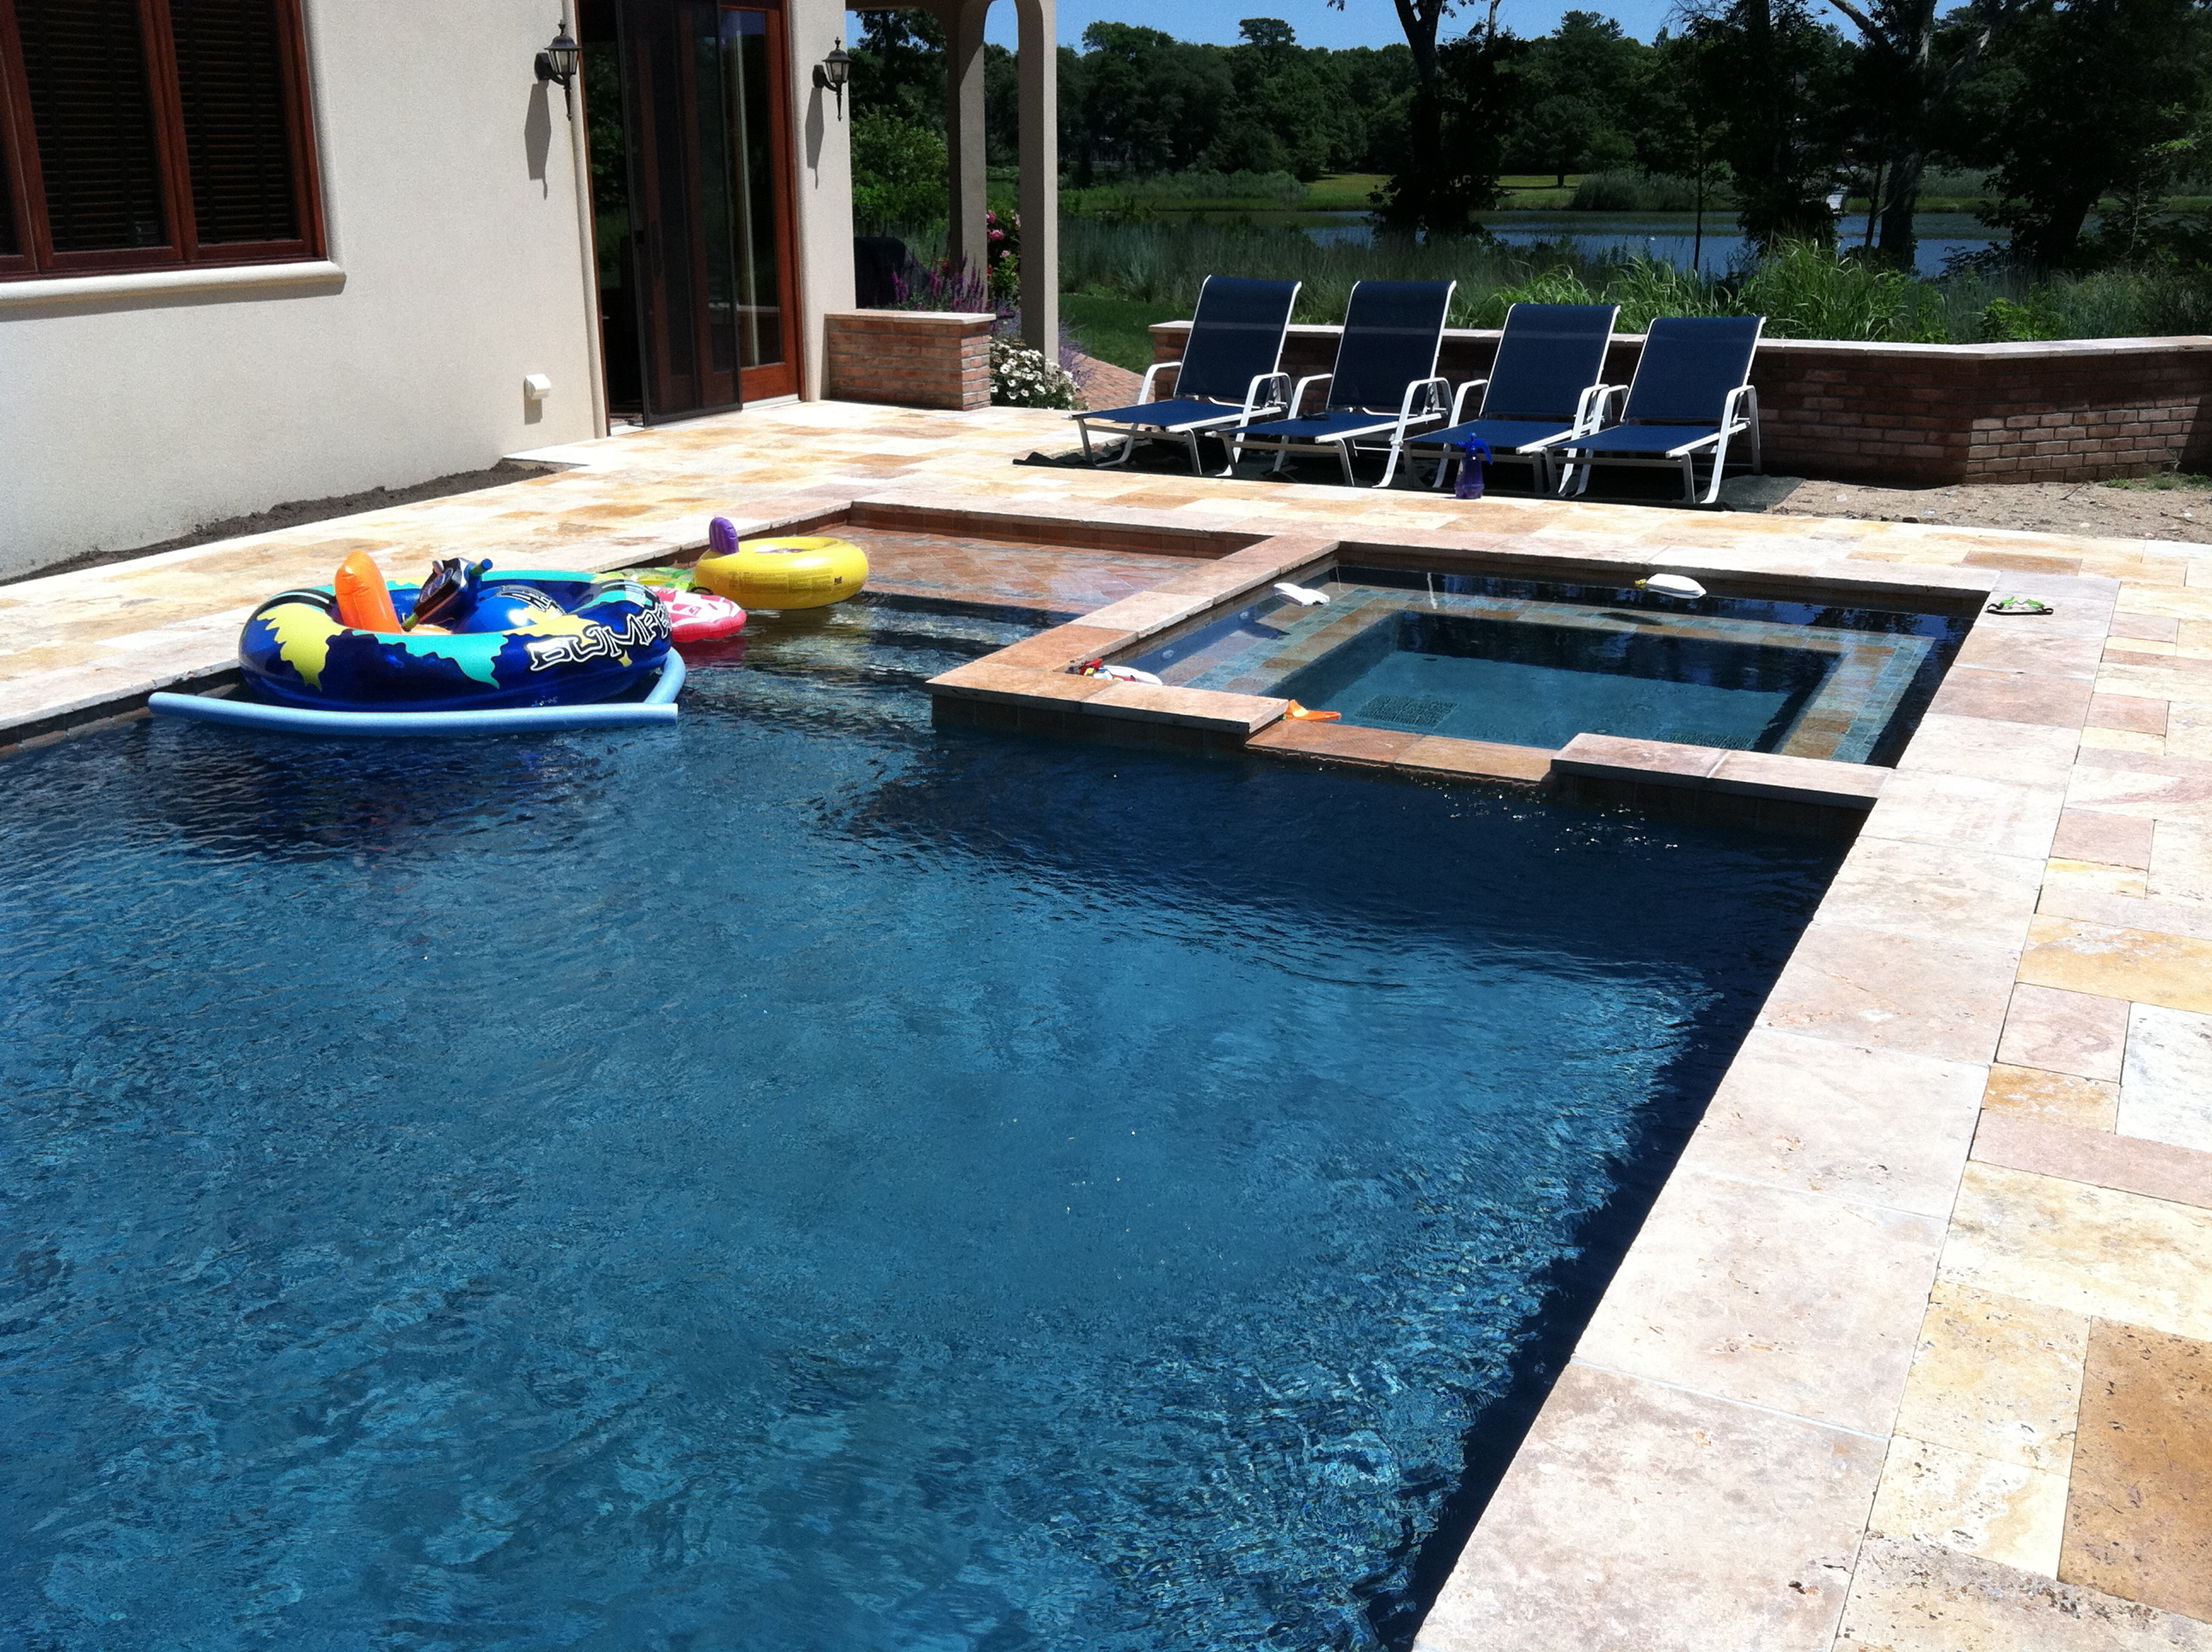 Gunite pool spa suffolk county long island patricks for Pool and spa contractors